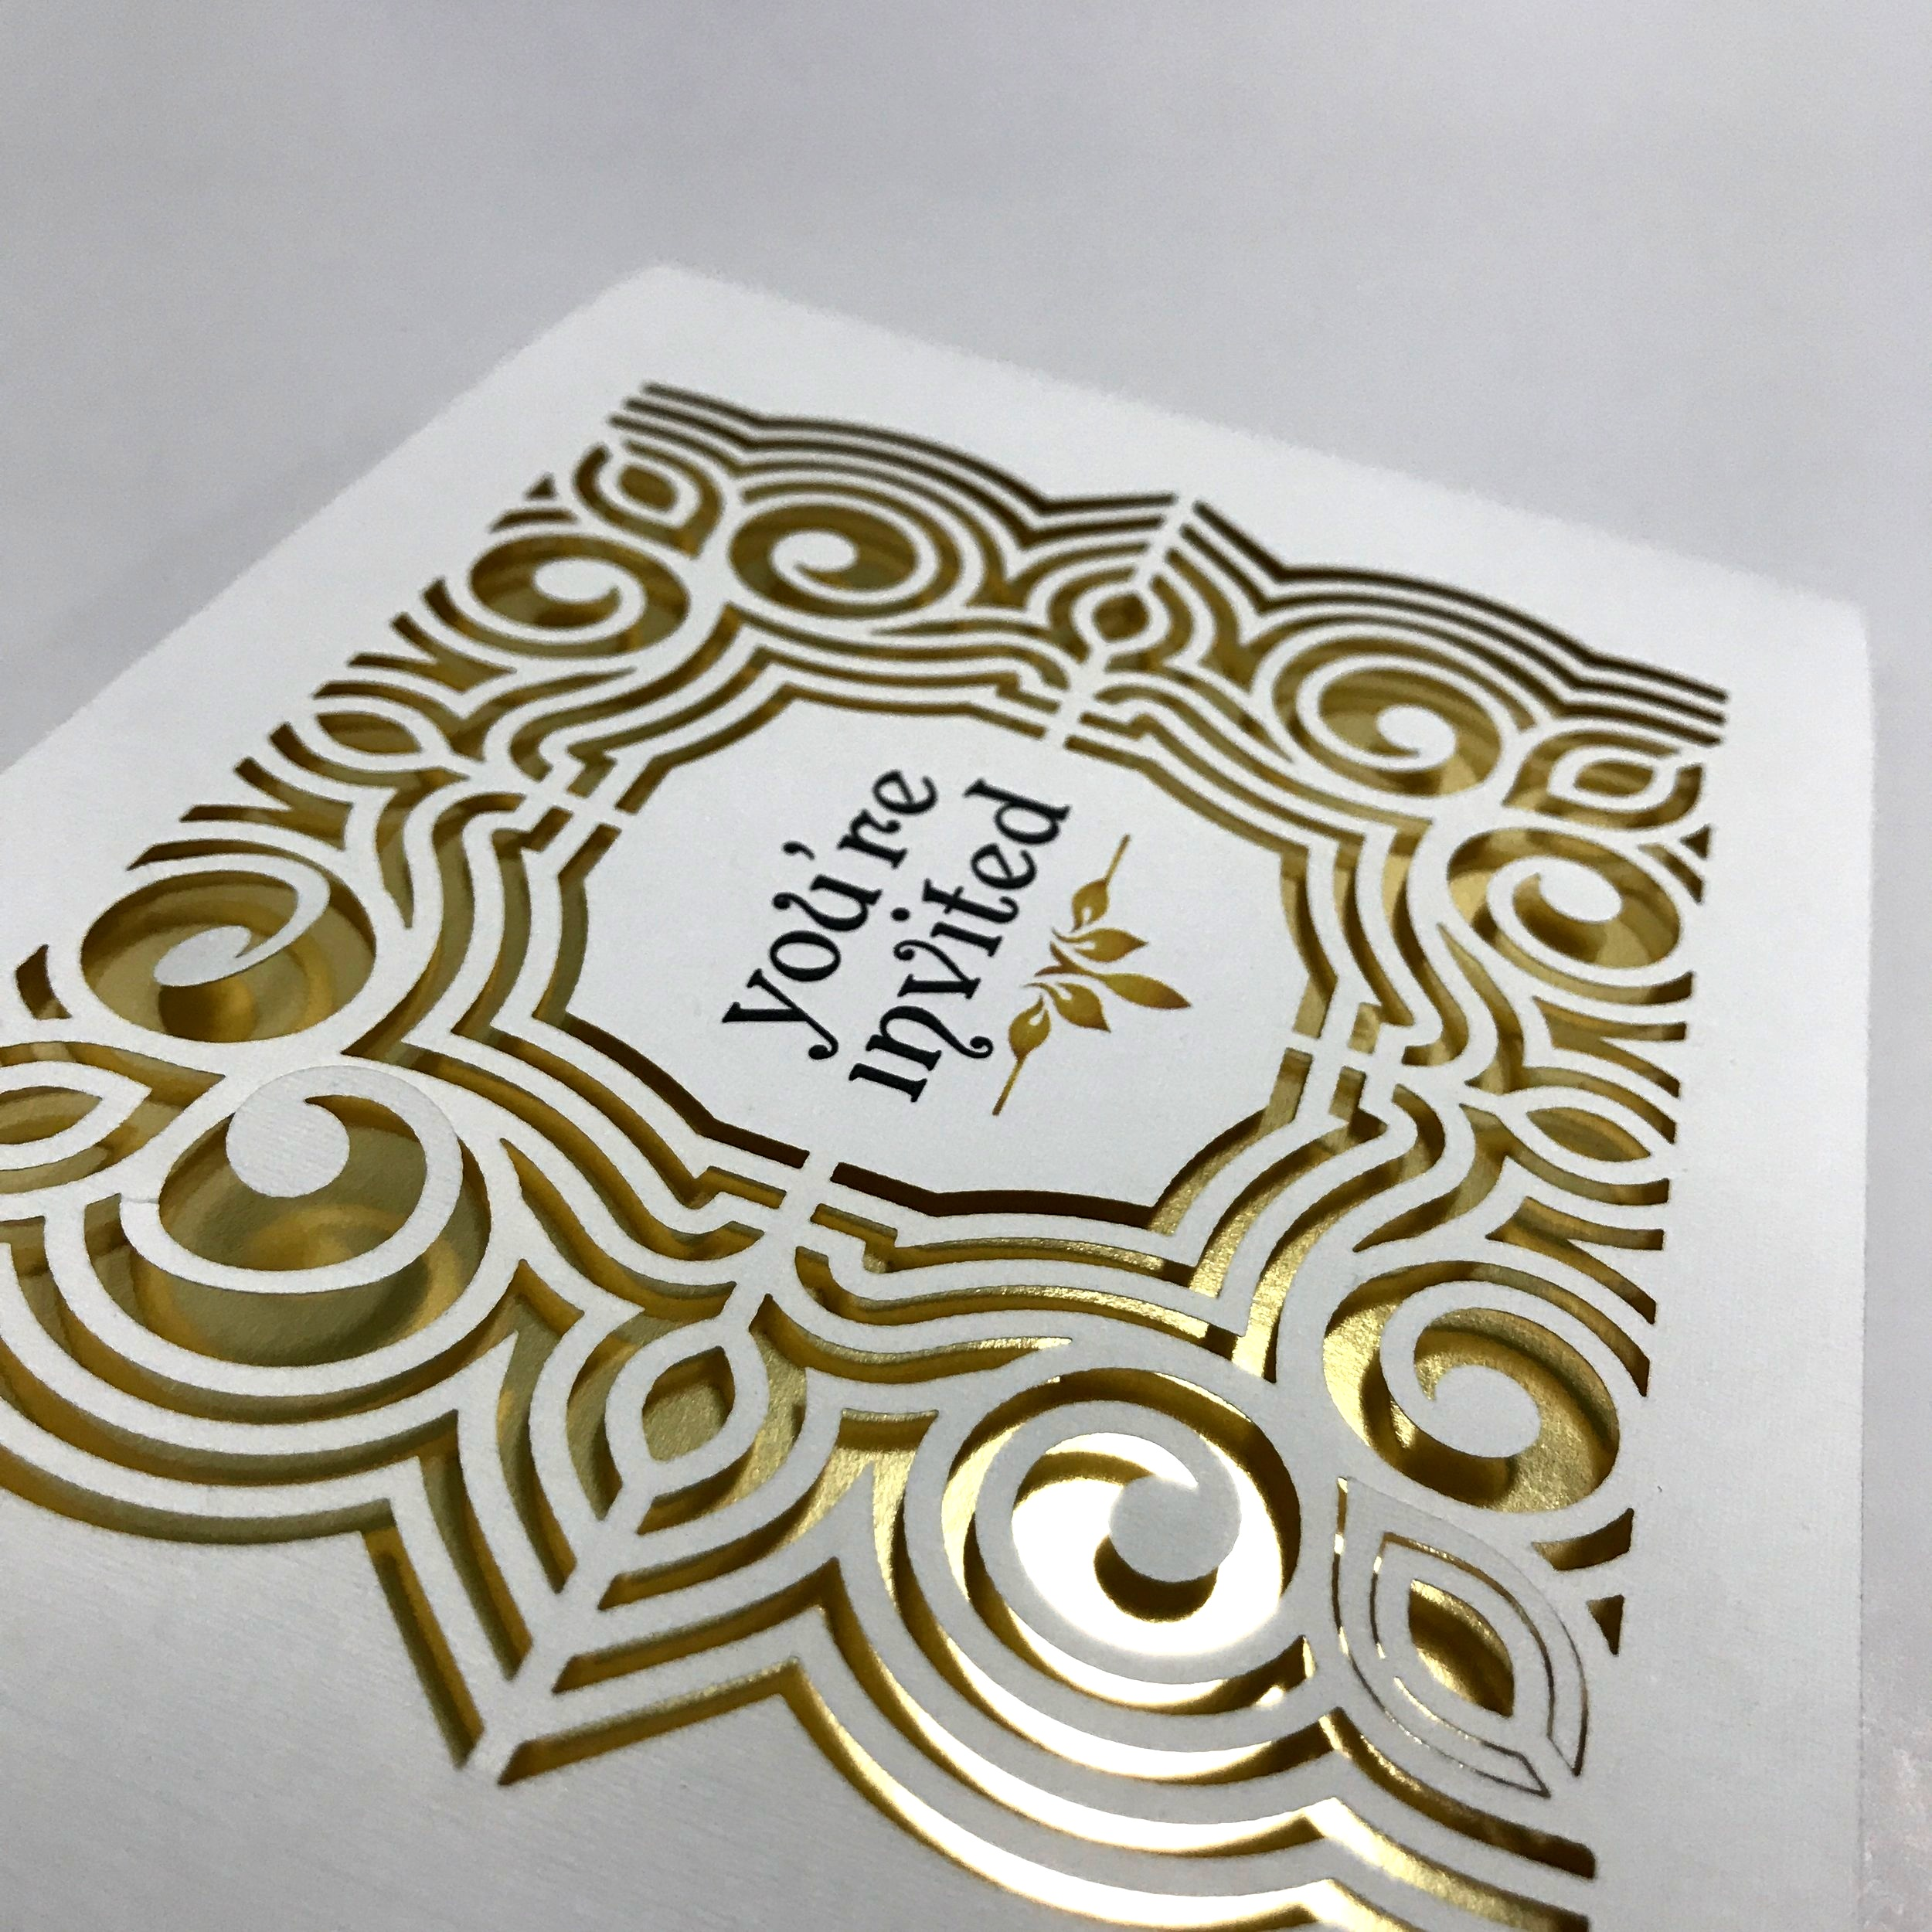 High quality die cutting with foil background printed in Minnesota